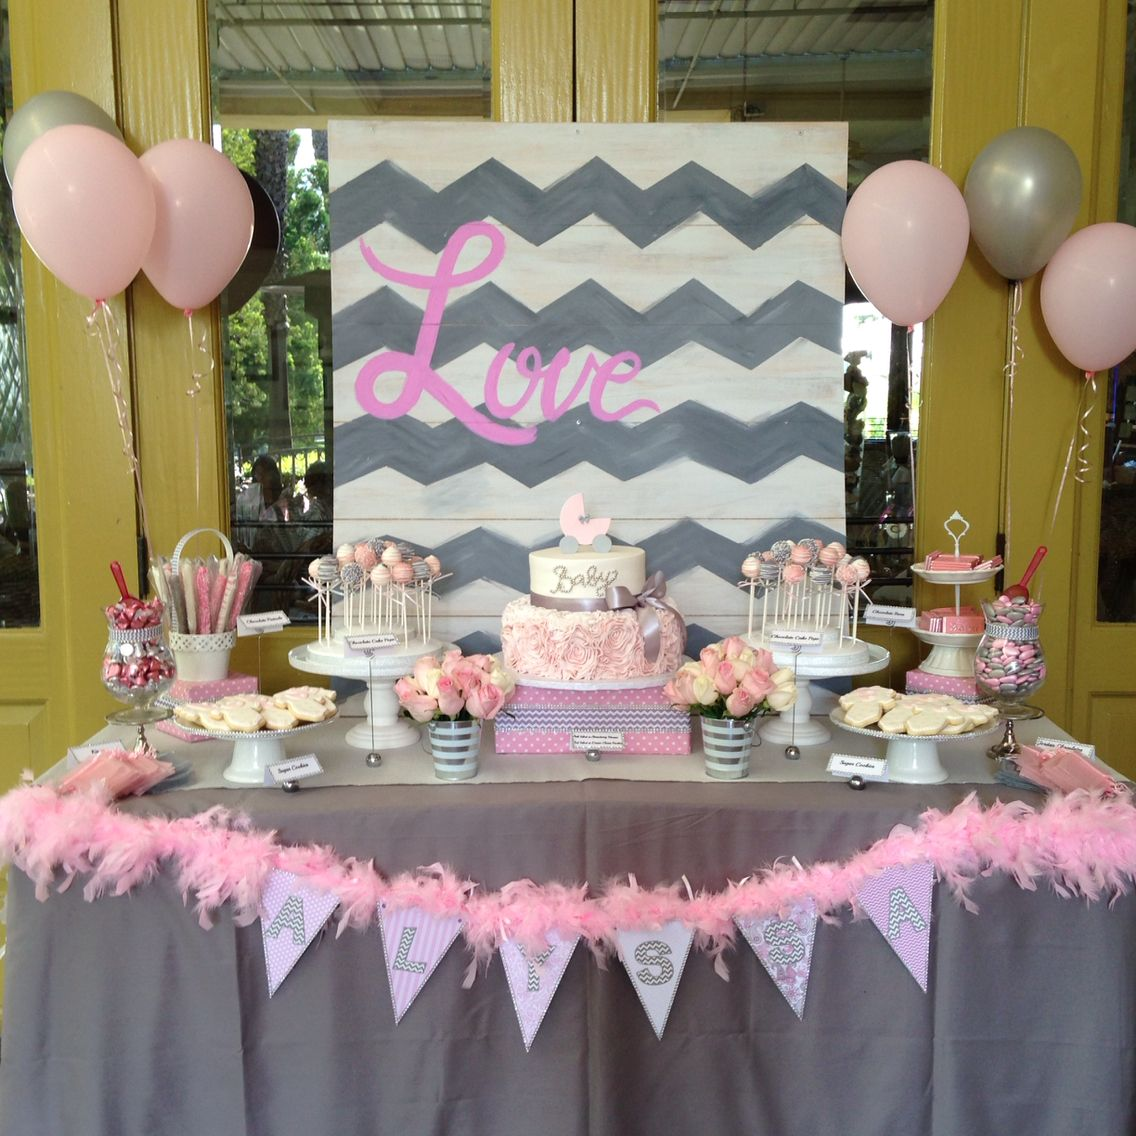 Chevron, Pink, Grey, Baby Shower, Carriage Rossette Cake